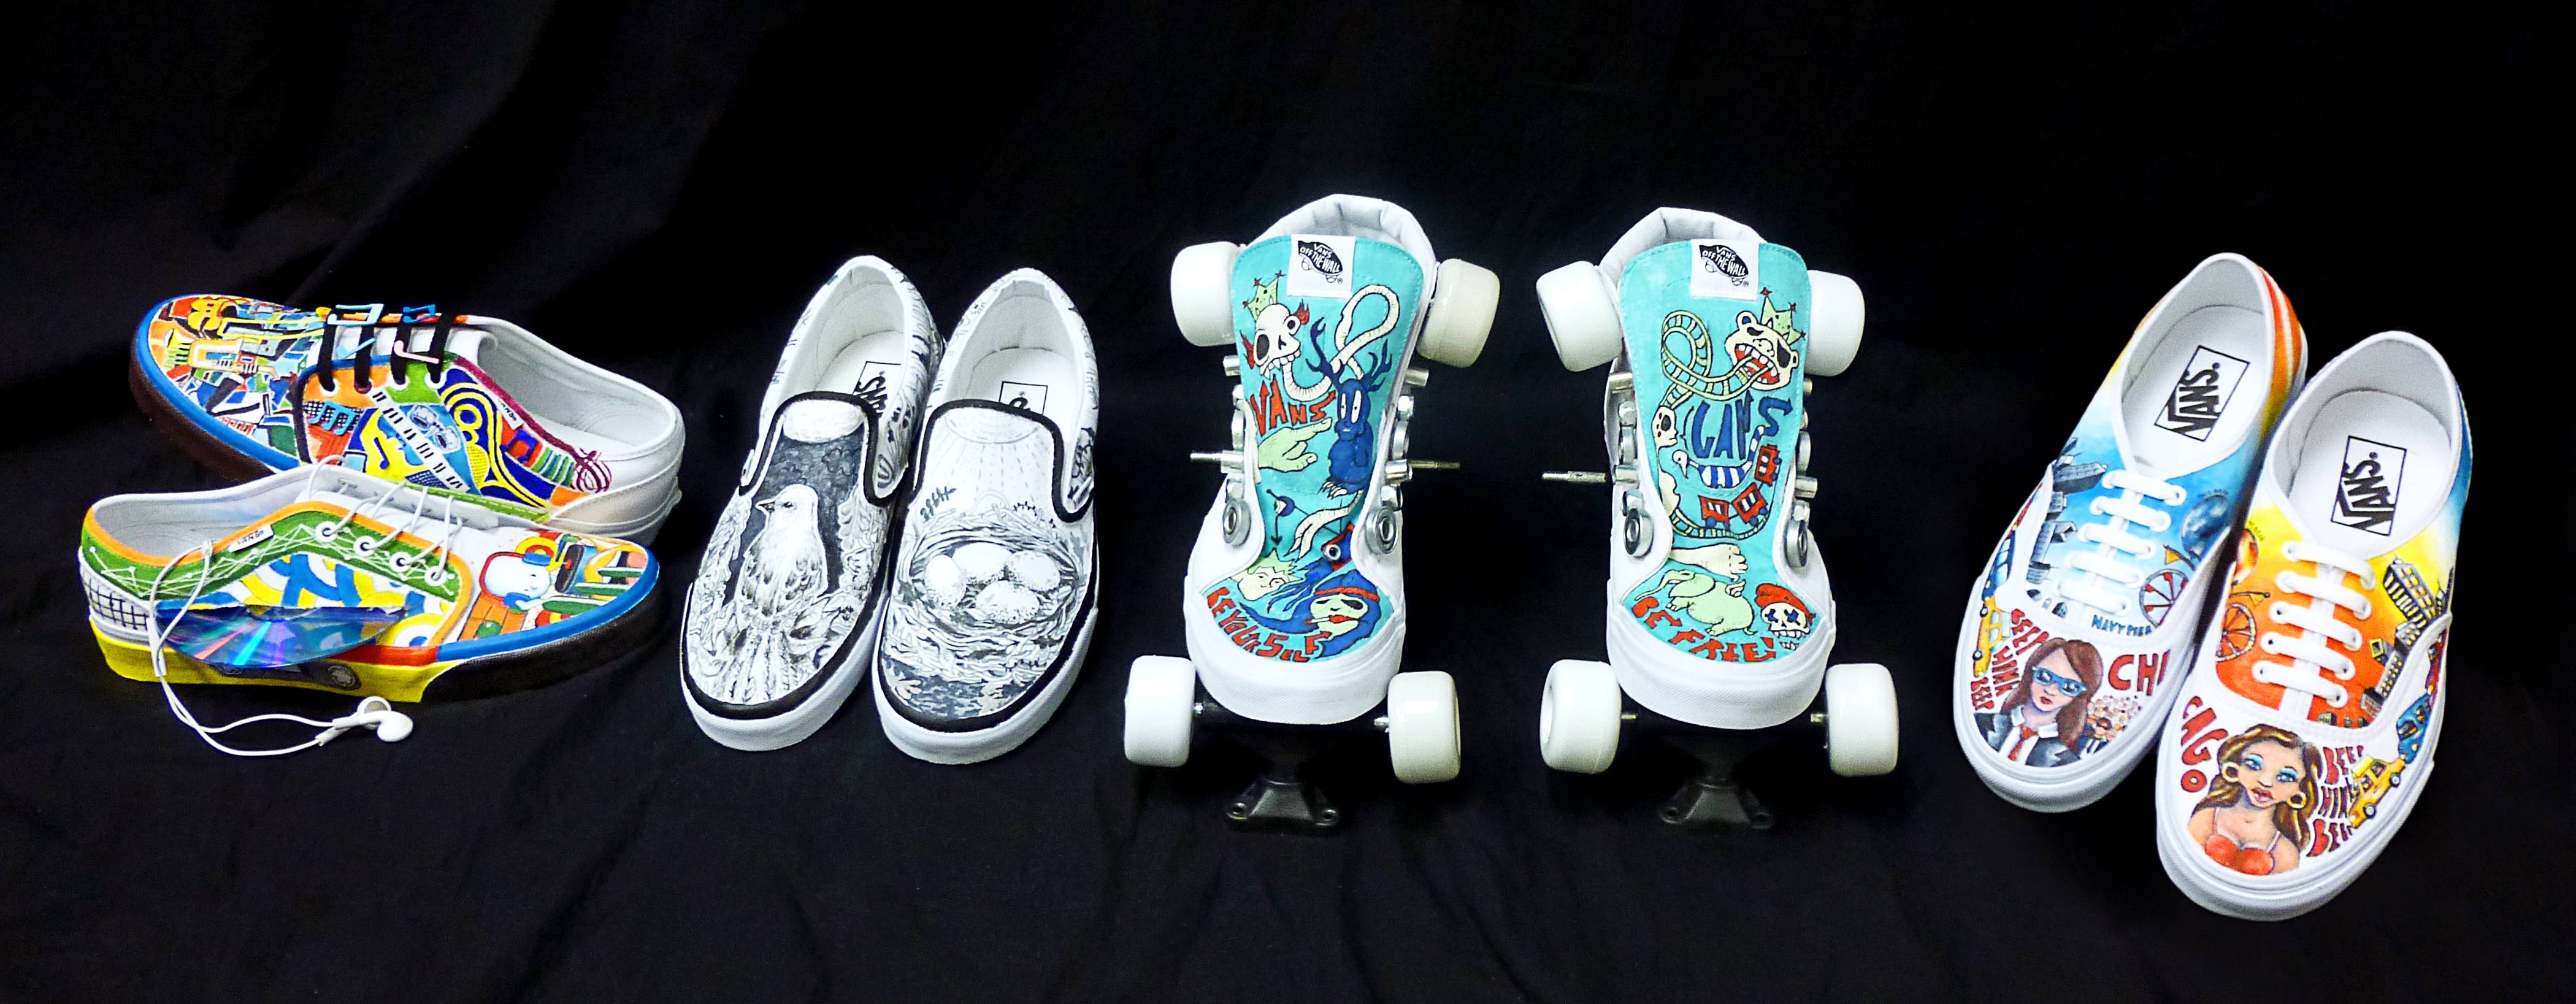 Vernon Hills High School students' shoe designs for the Custom Culture competition.  Design by (left to right): Ann Ho, Kathleen McLoughlin, Tiffany Do, and Olivia Weaver.